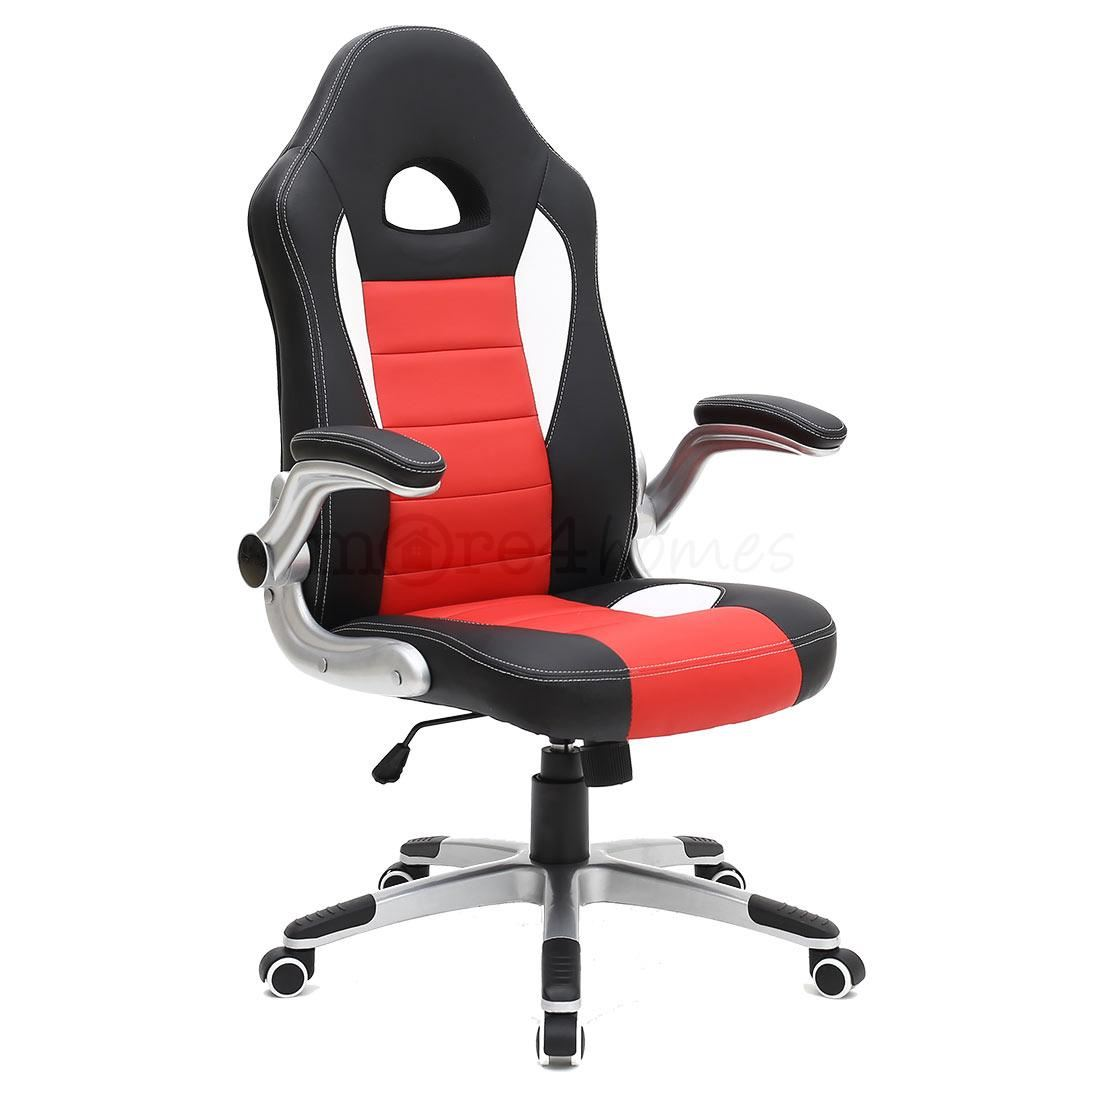 Cruz Red Sport Racing Car Office Chair Leather